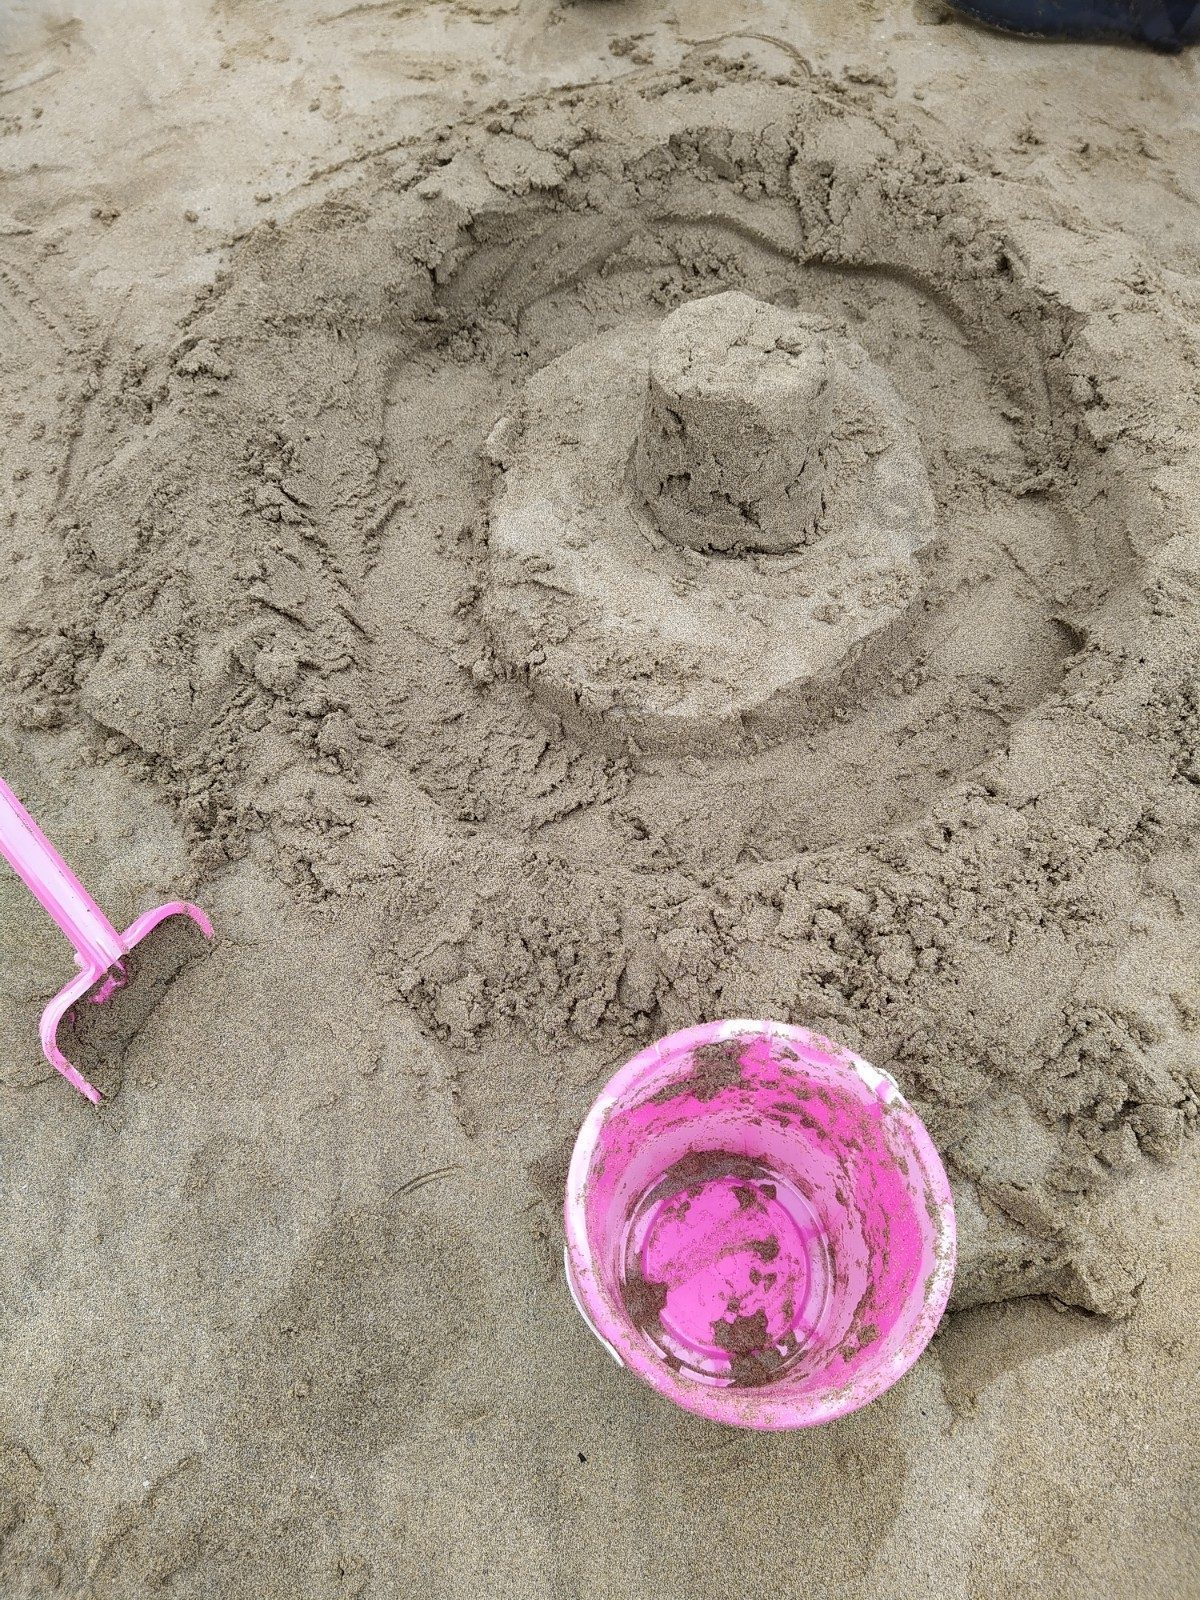 bucket and spade on sand